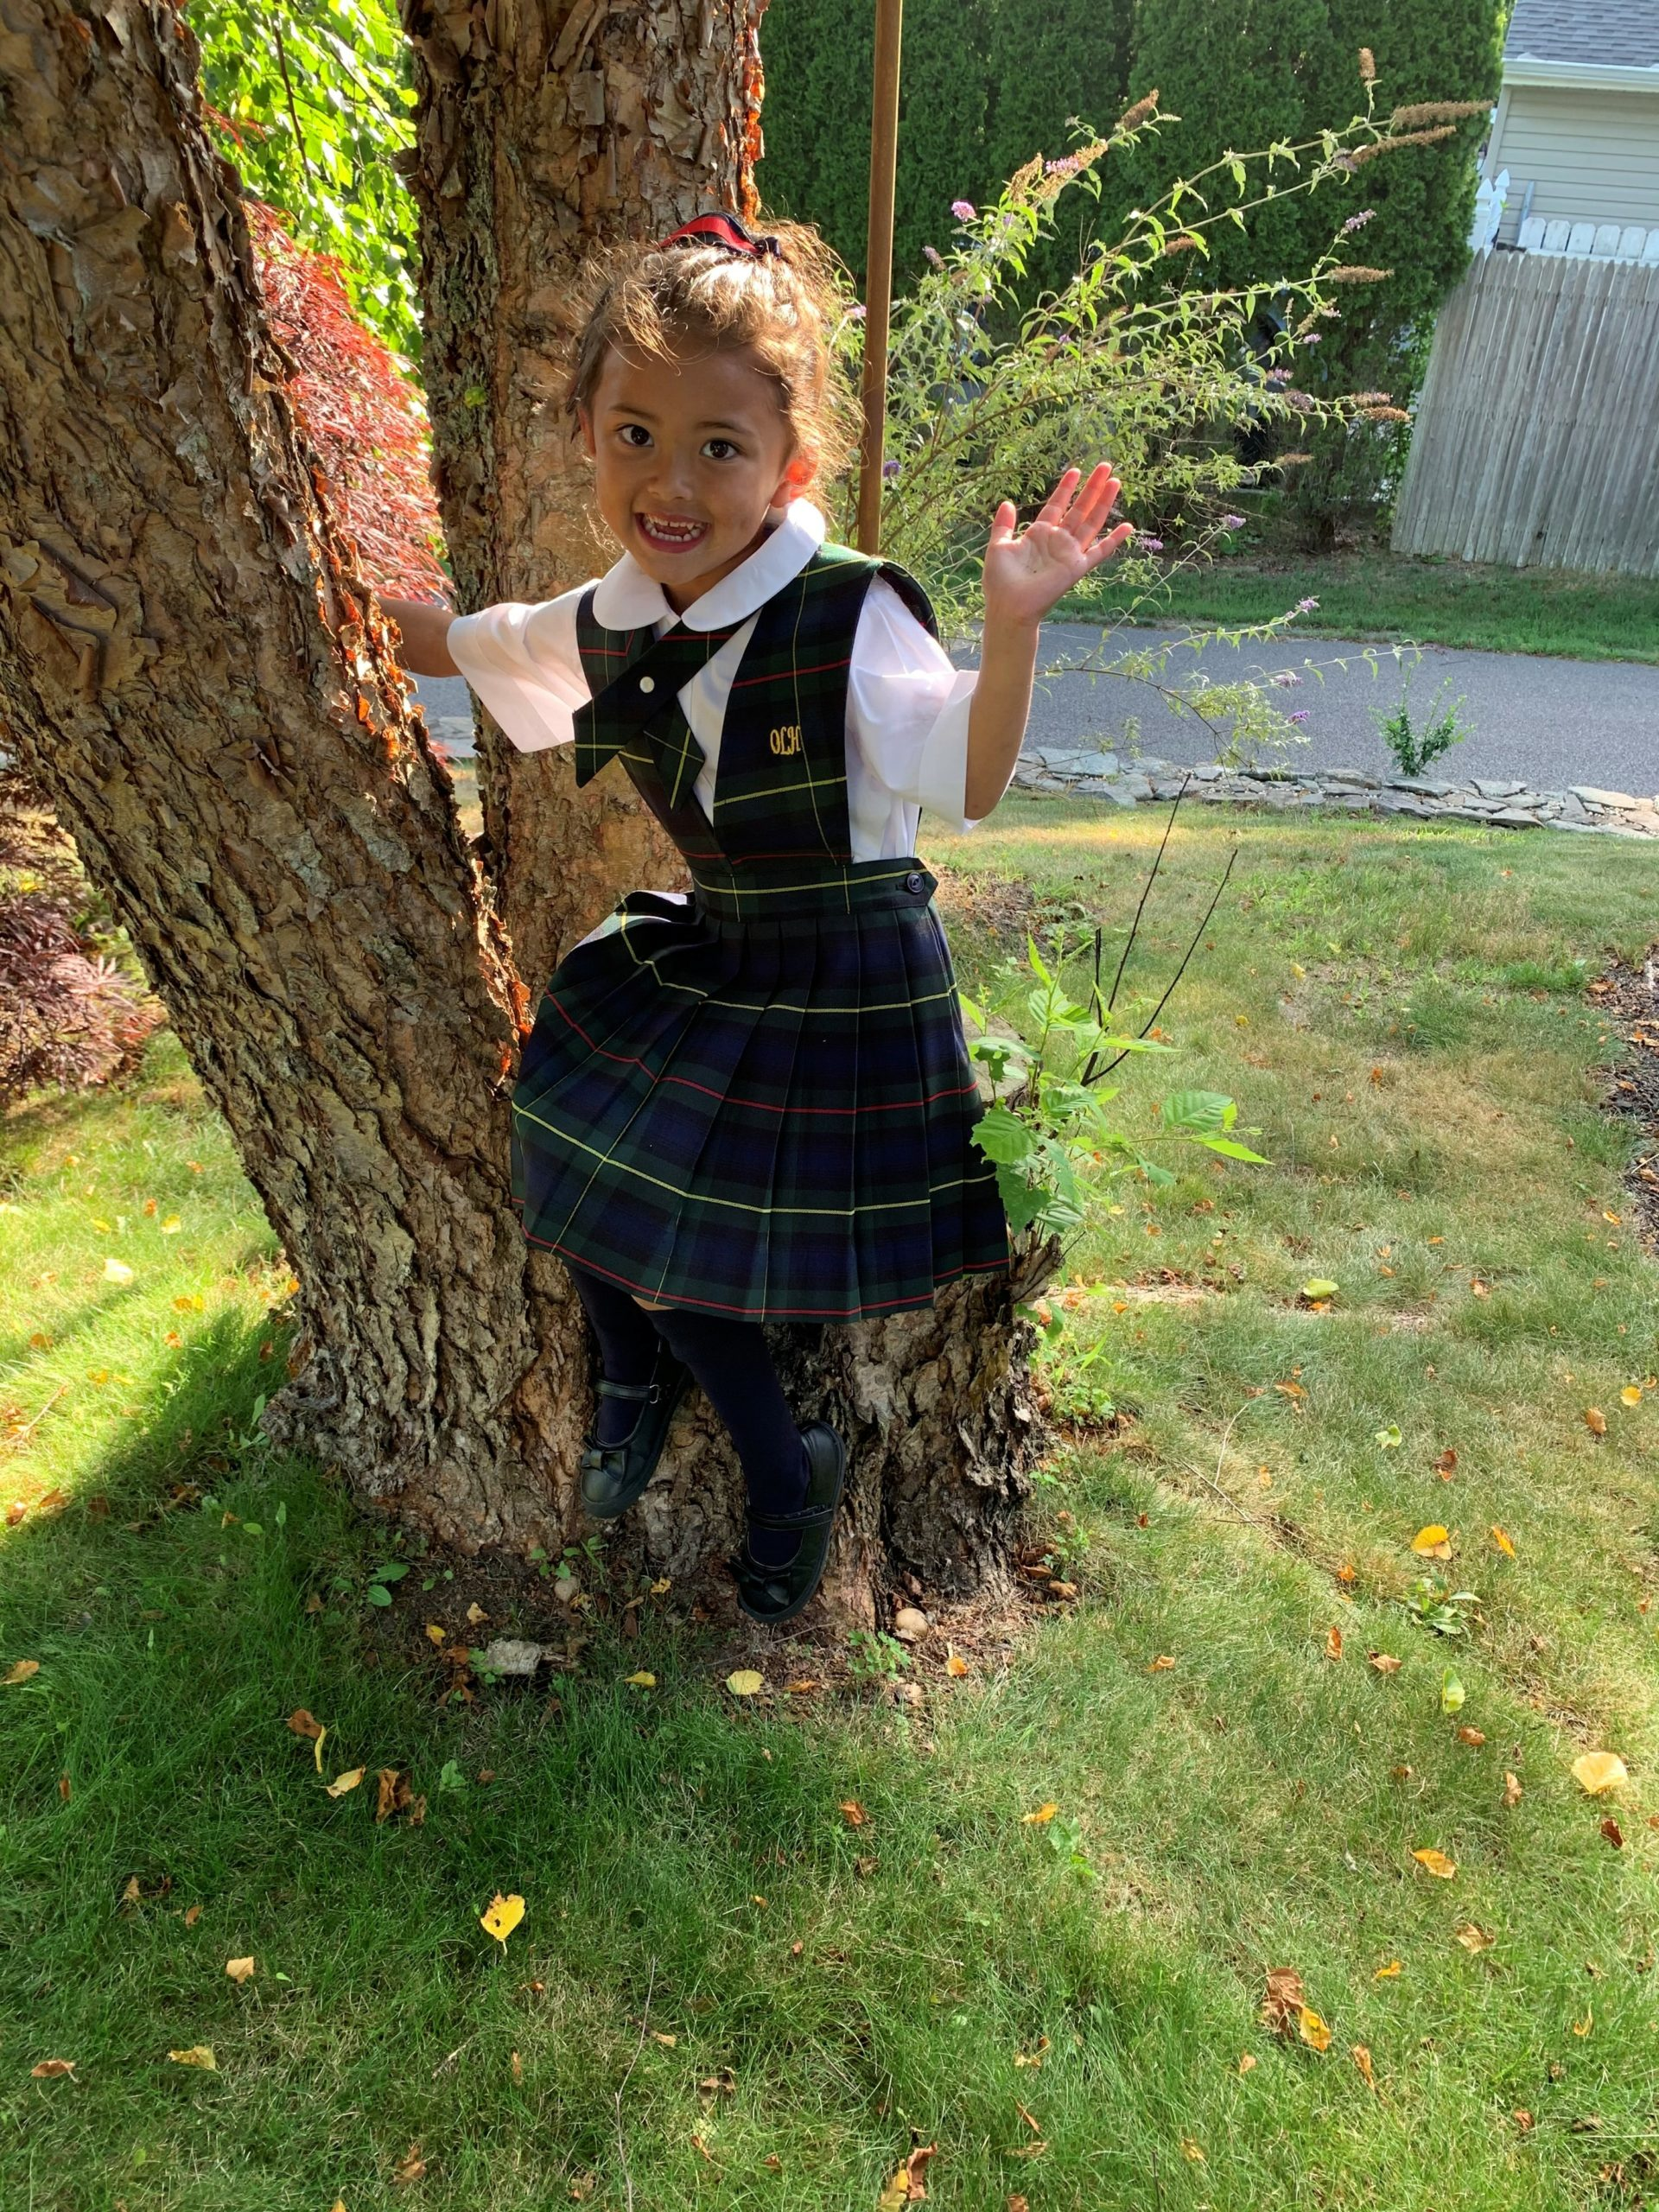 New kindergartner Myla Turnbull tried on her new OLH uniform for the first time.